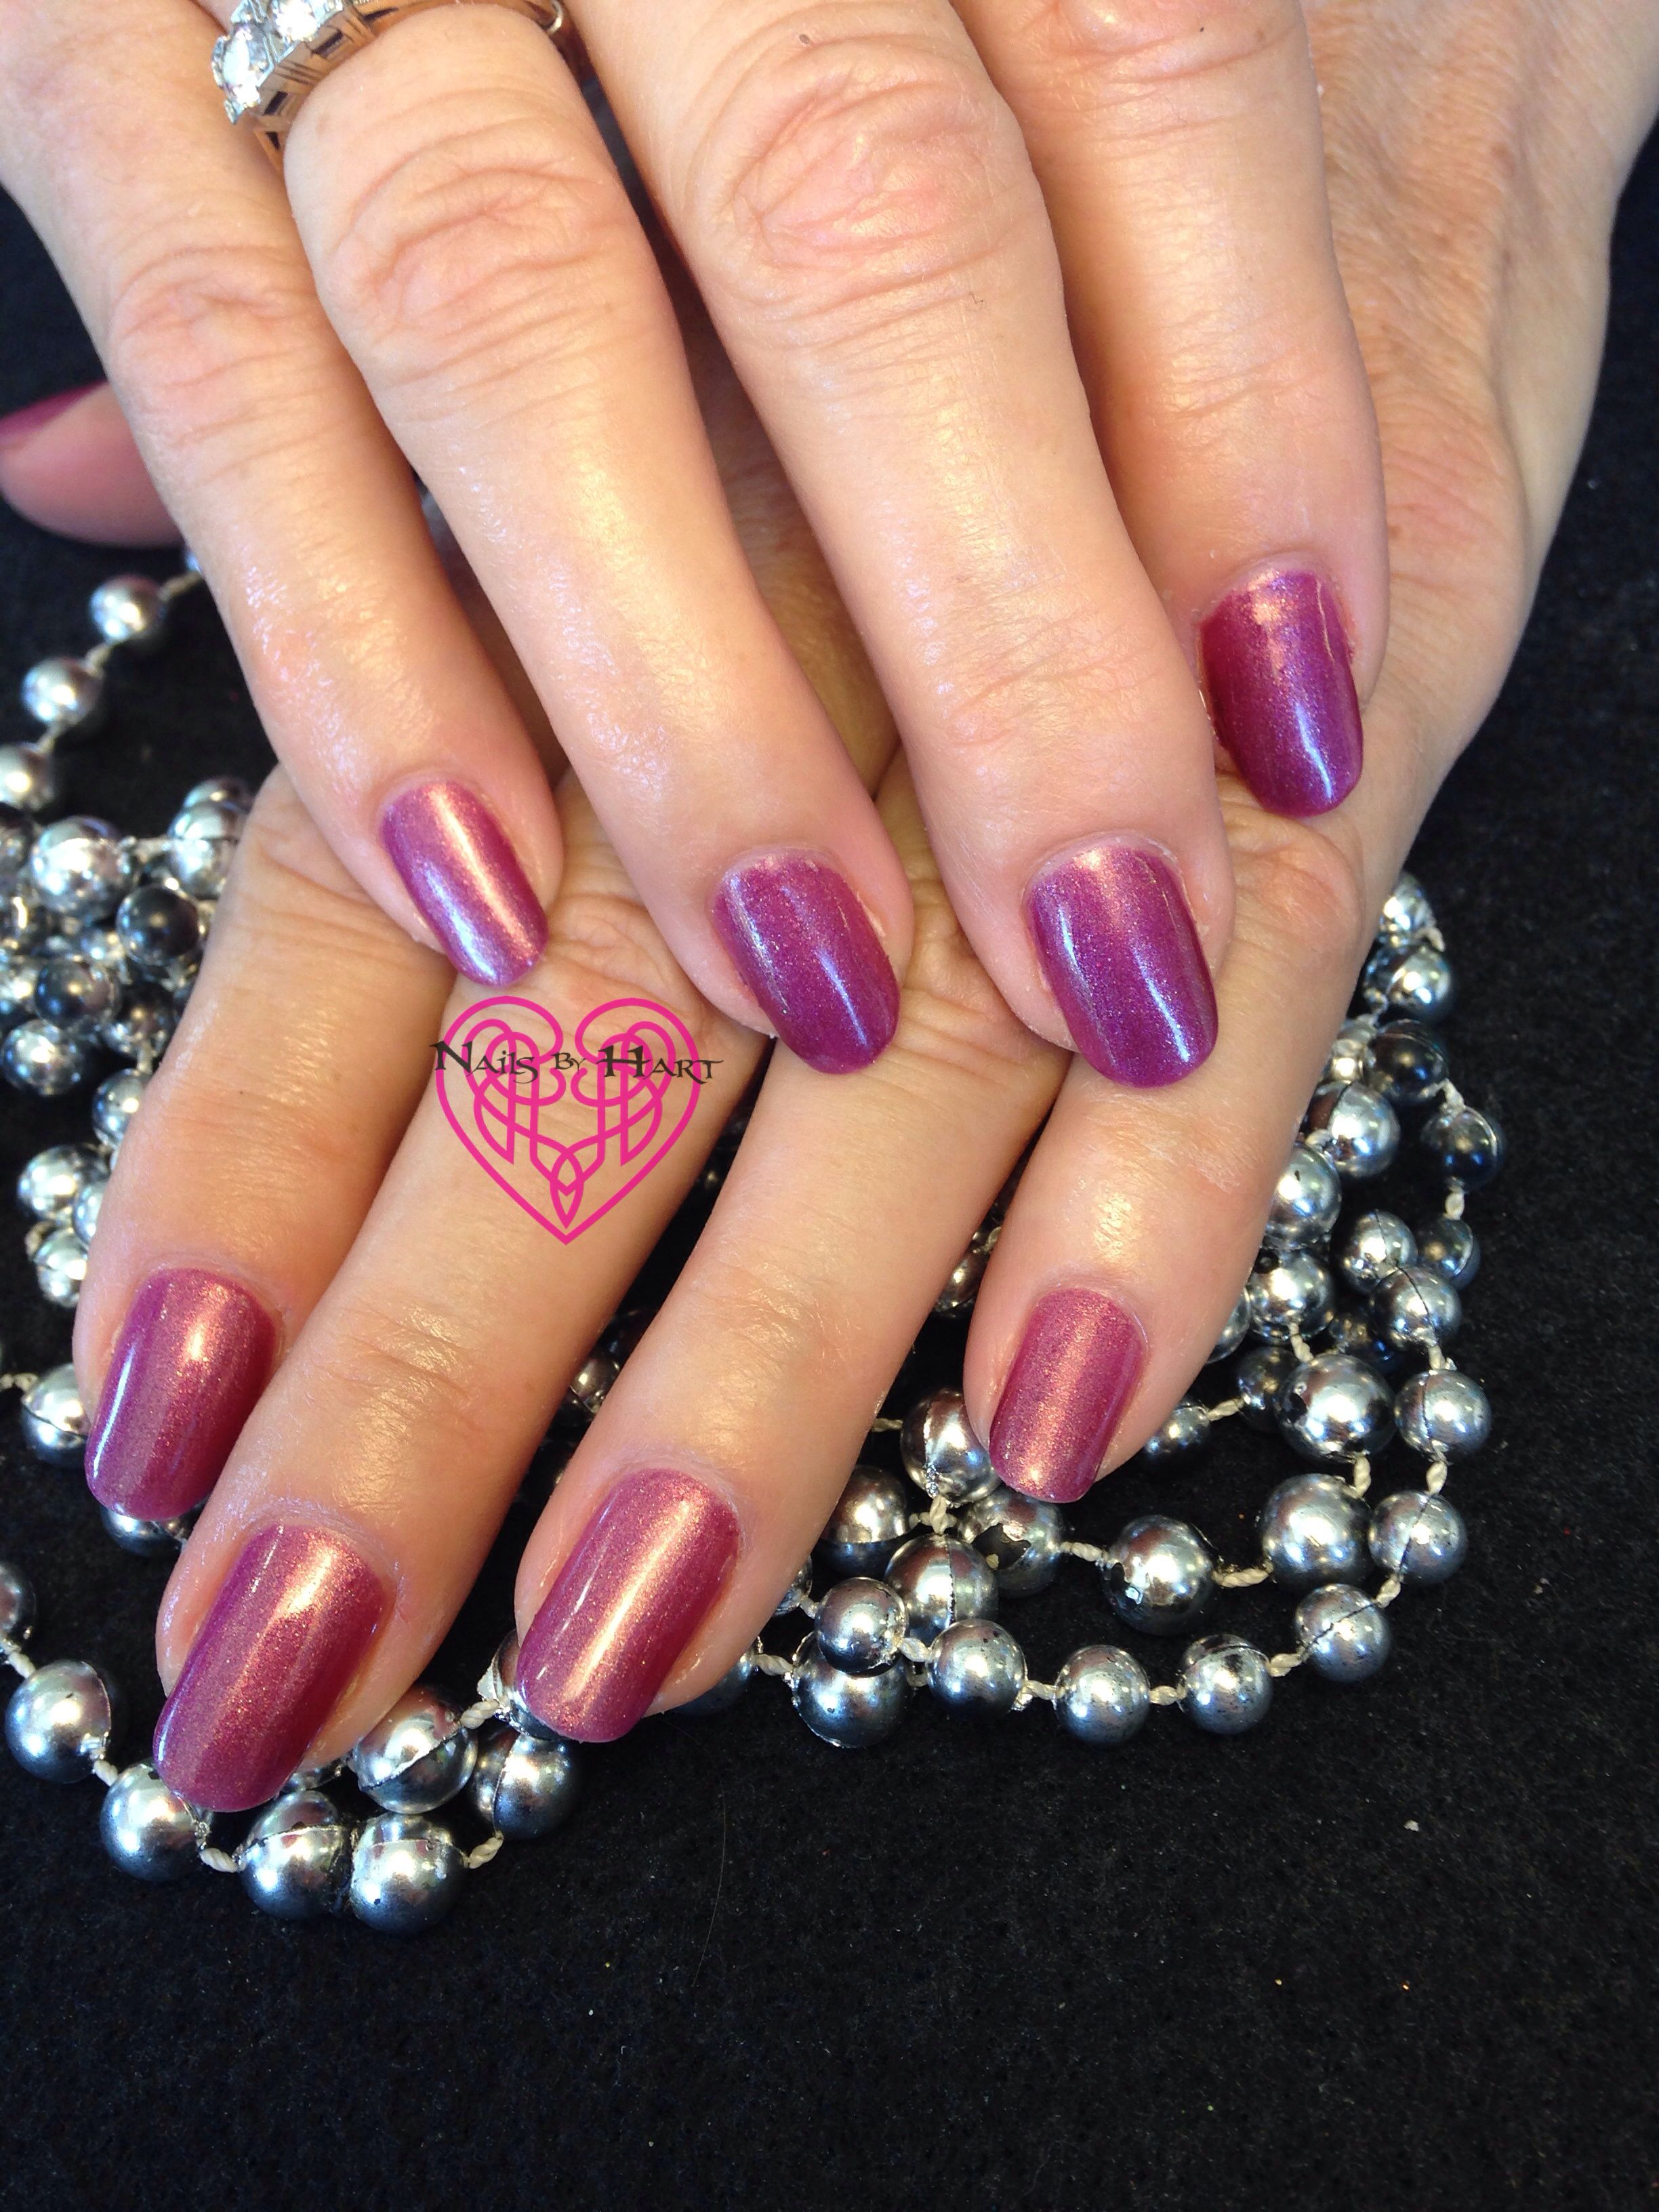 Nails by Katie Hart Eugene, Or 541-730-2662www.styleseat.com ...